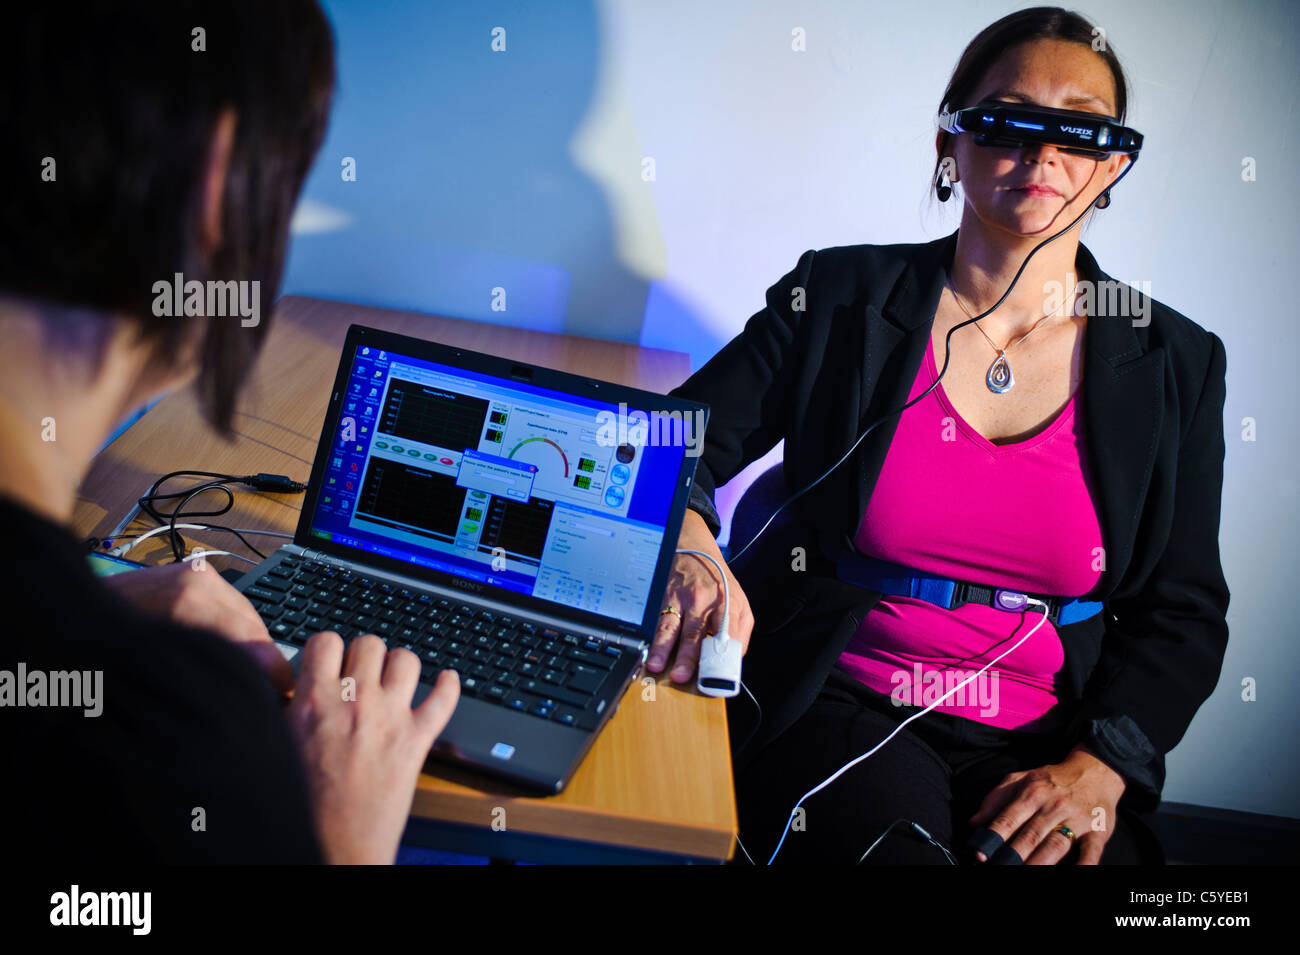 subject wearing virtual reality goggles in scientific study to treat phobia scientist monitoring results on laptop - Stock Image